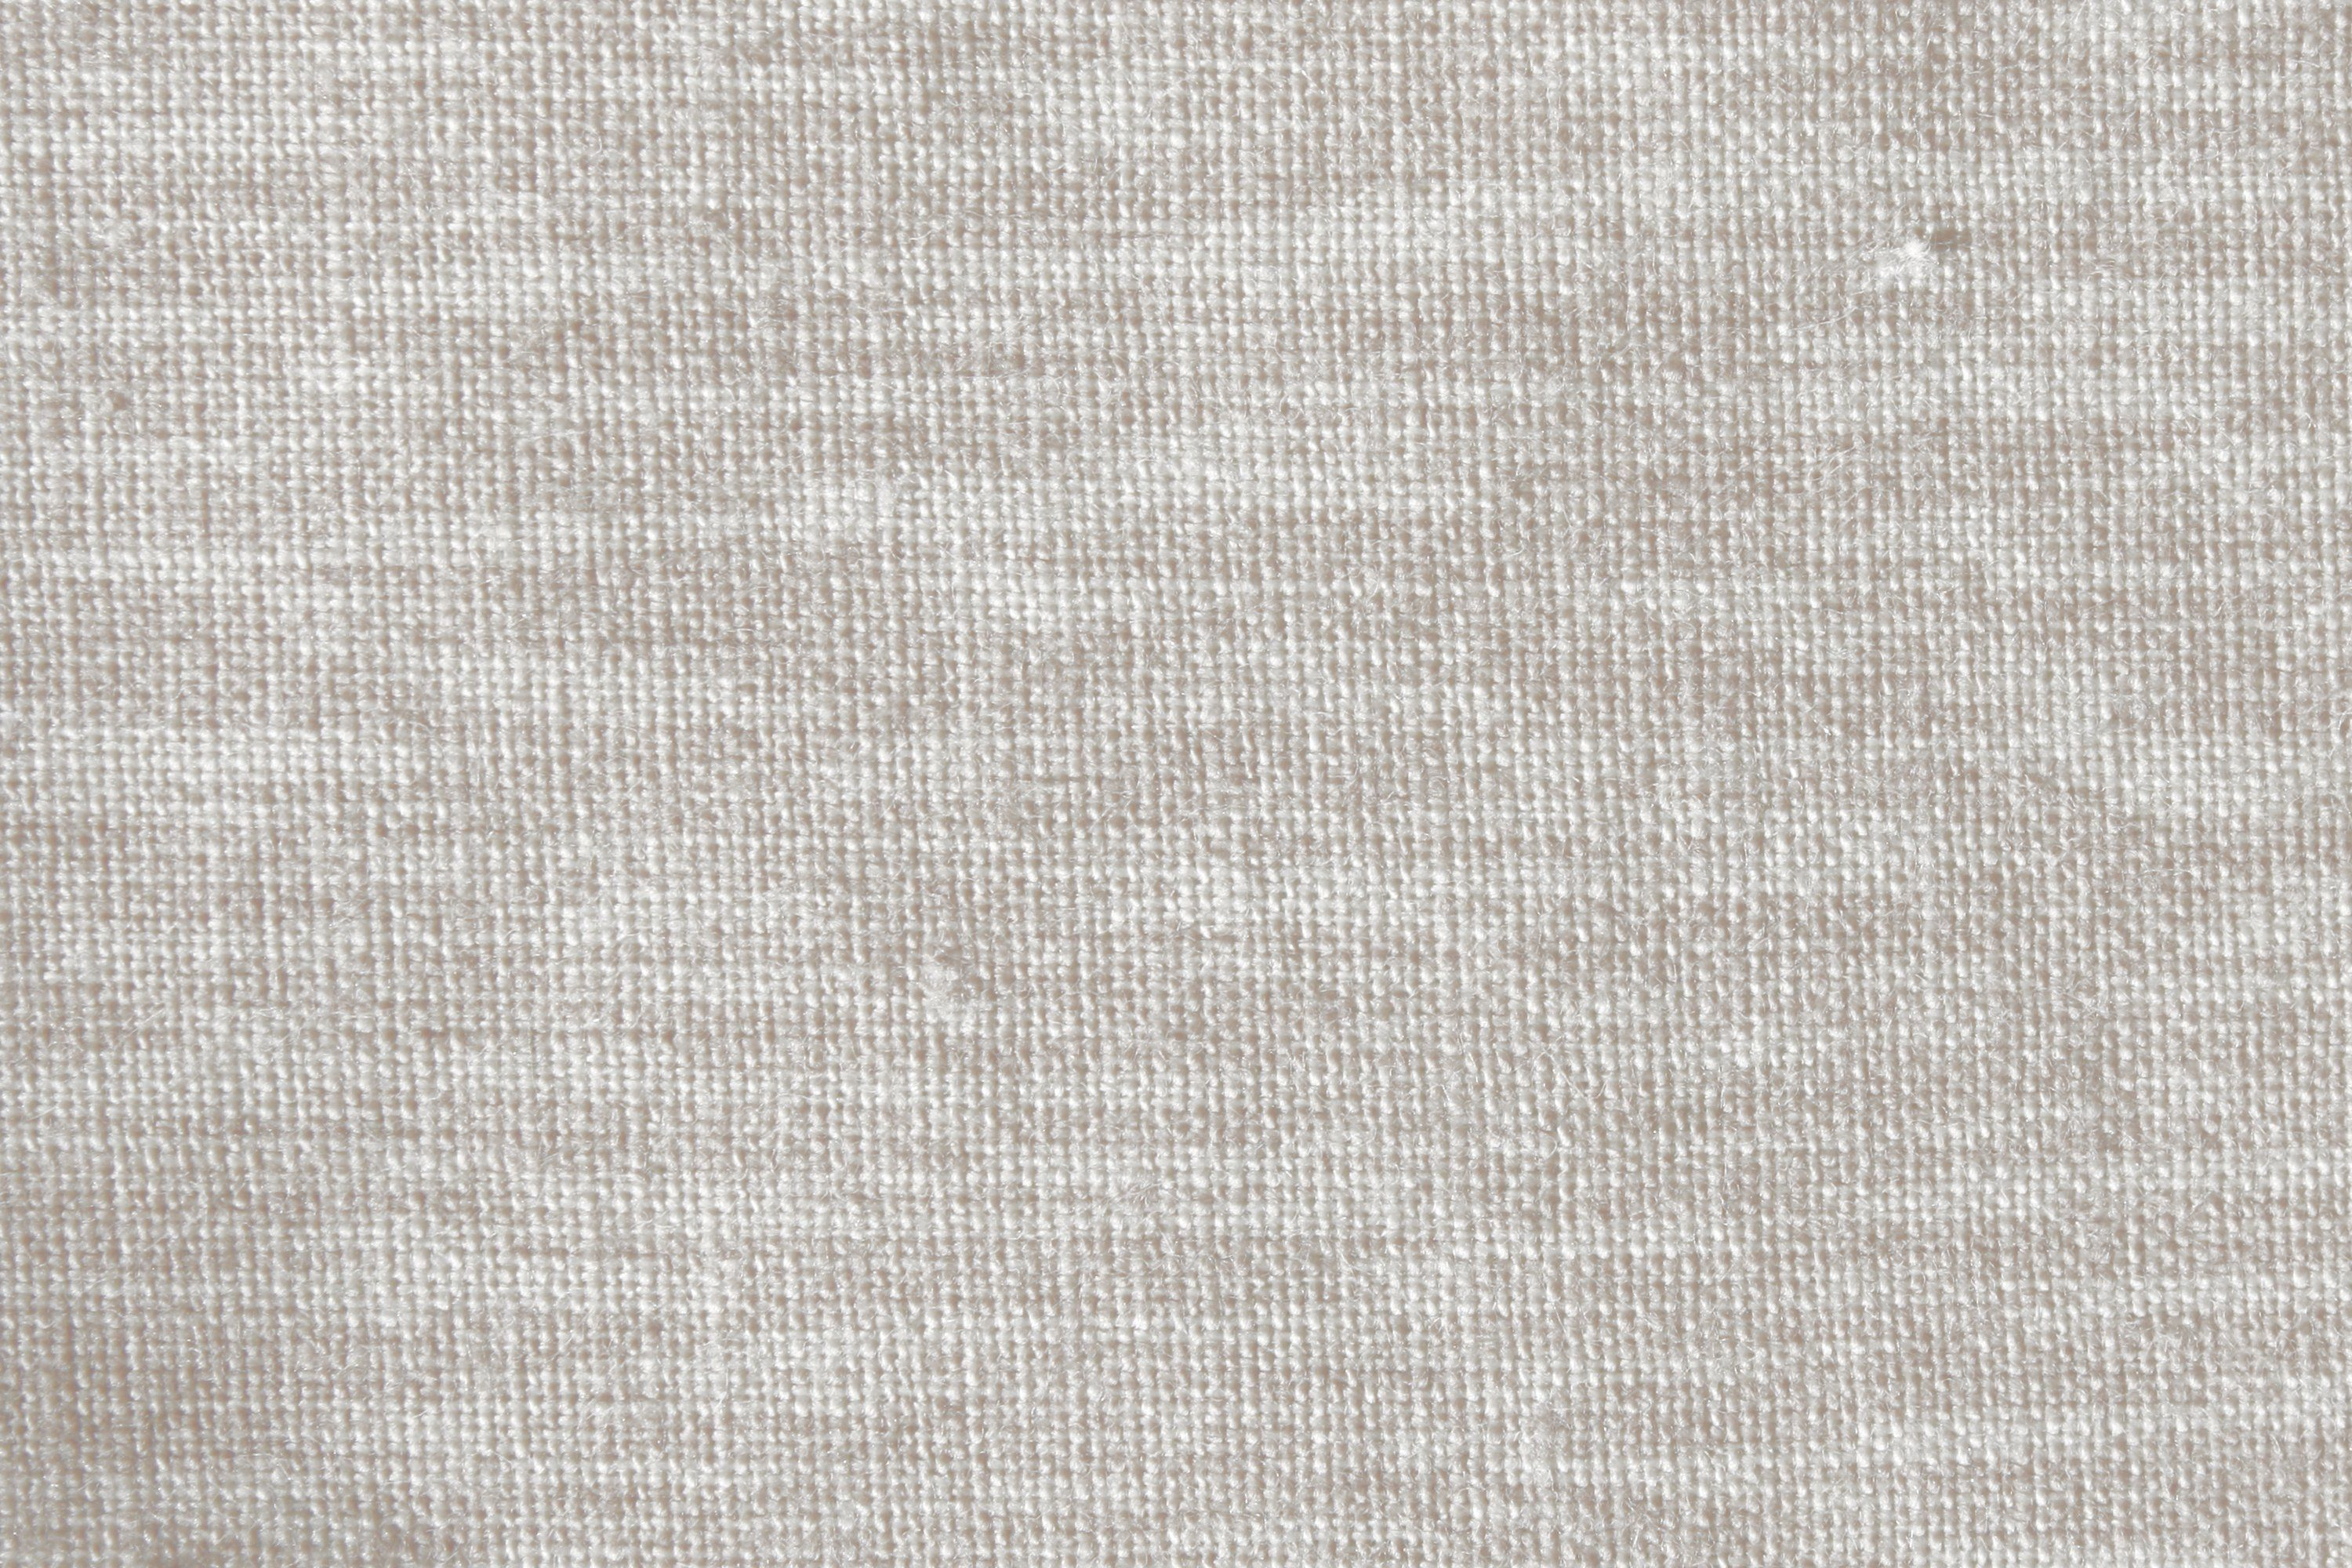 White Woven Fabric Close Up Texture - Free High Resolution Photo ... for White Woven Fabric Texture  111ane